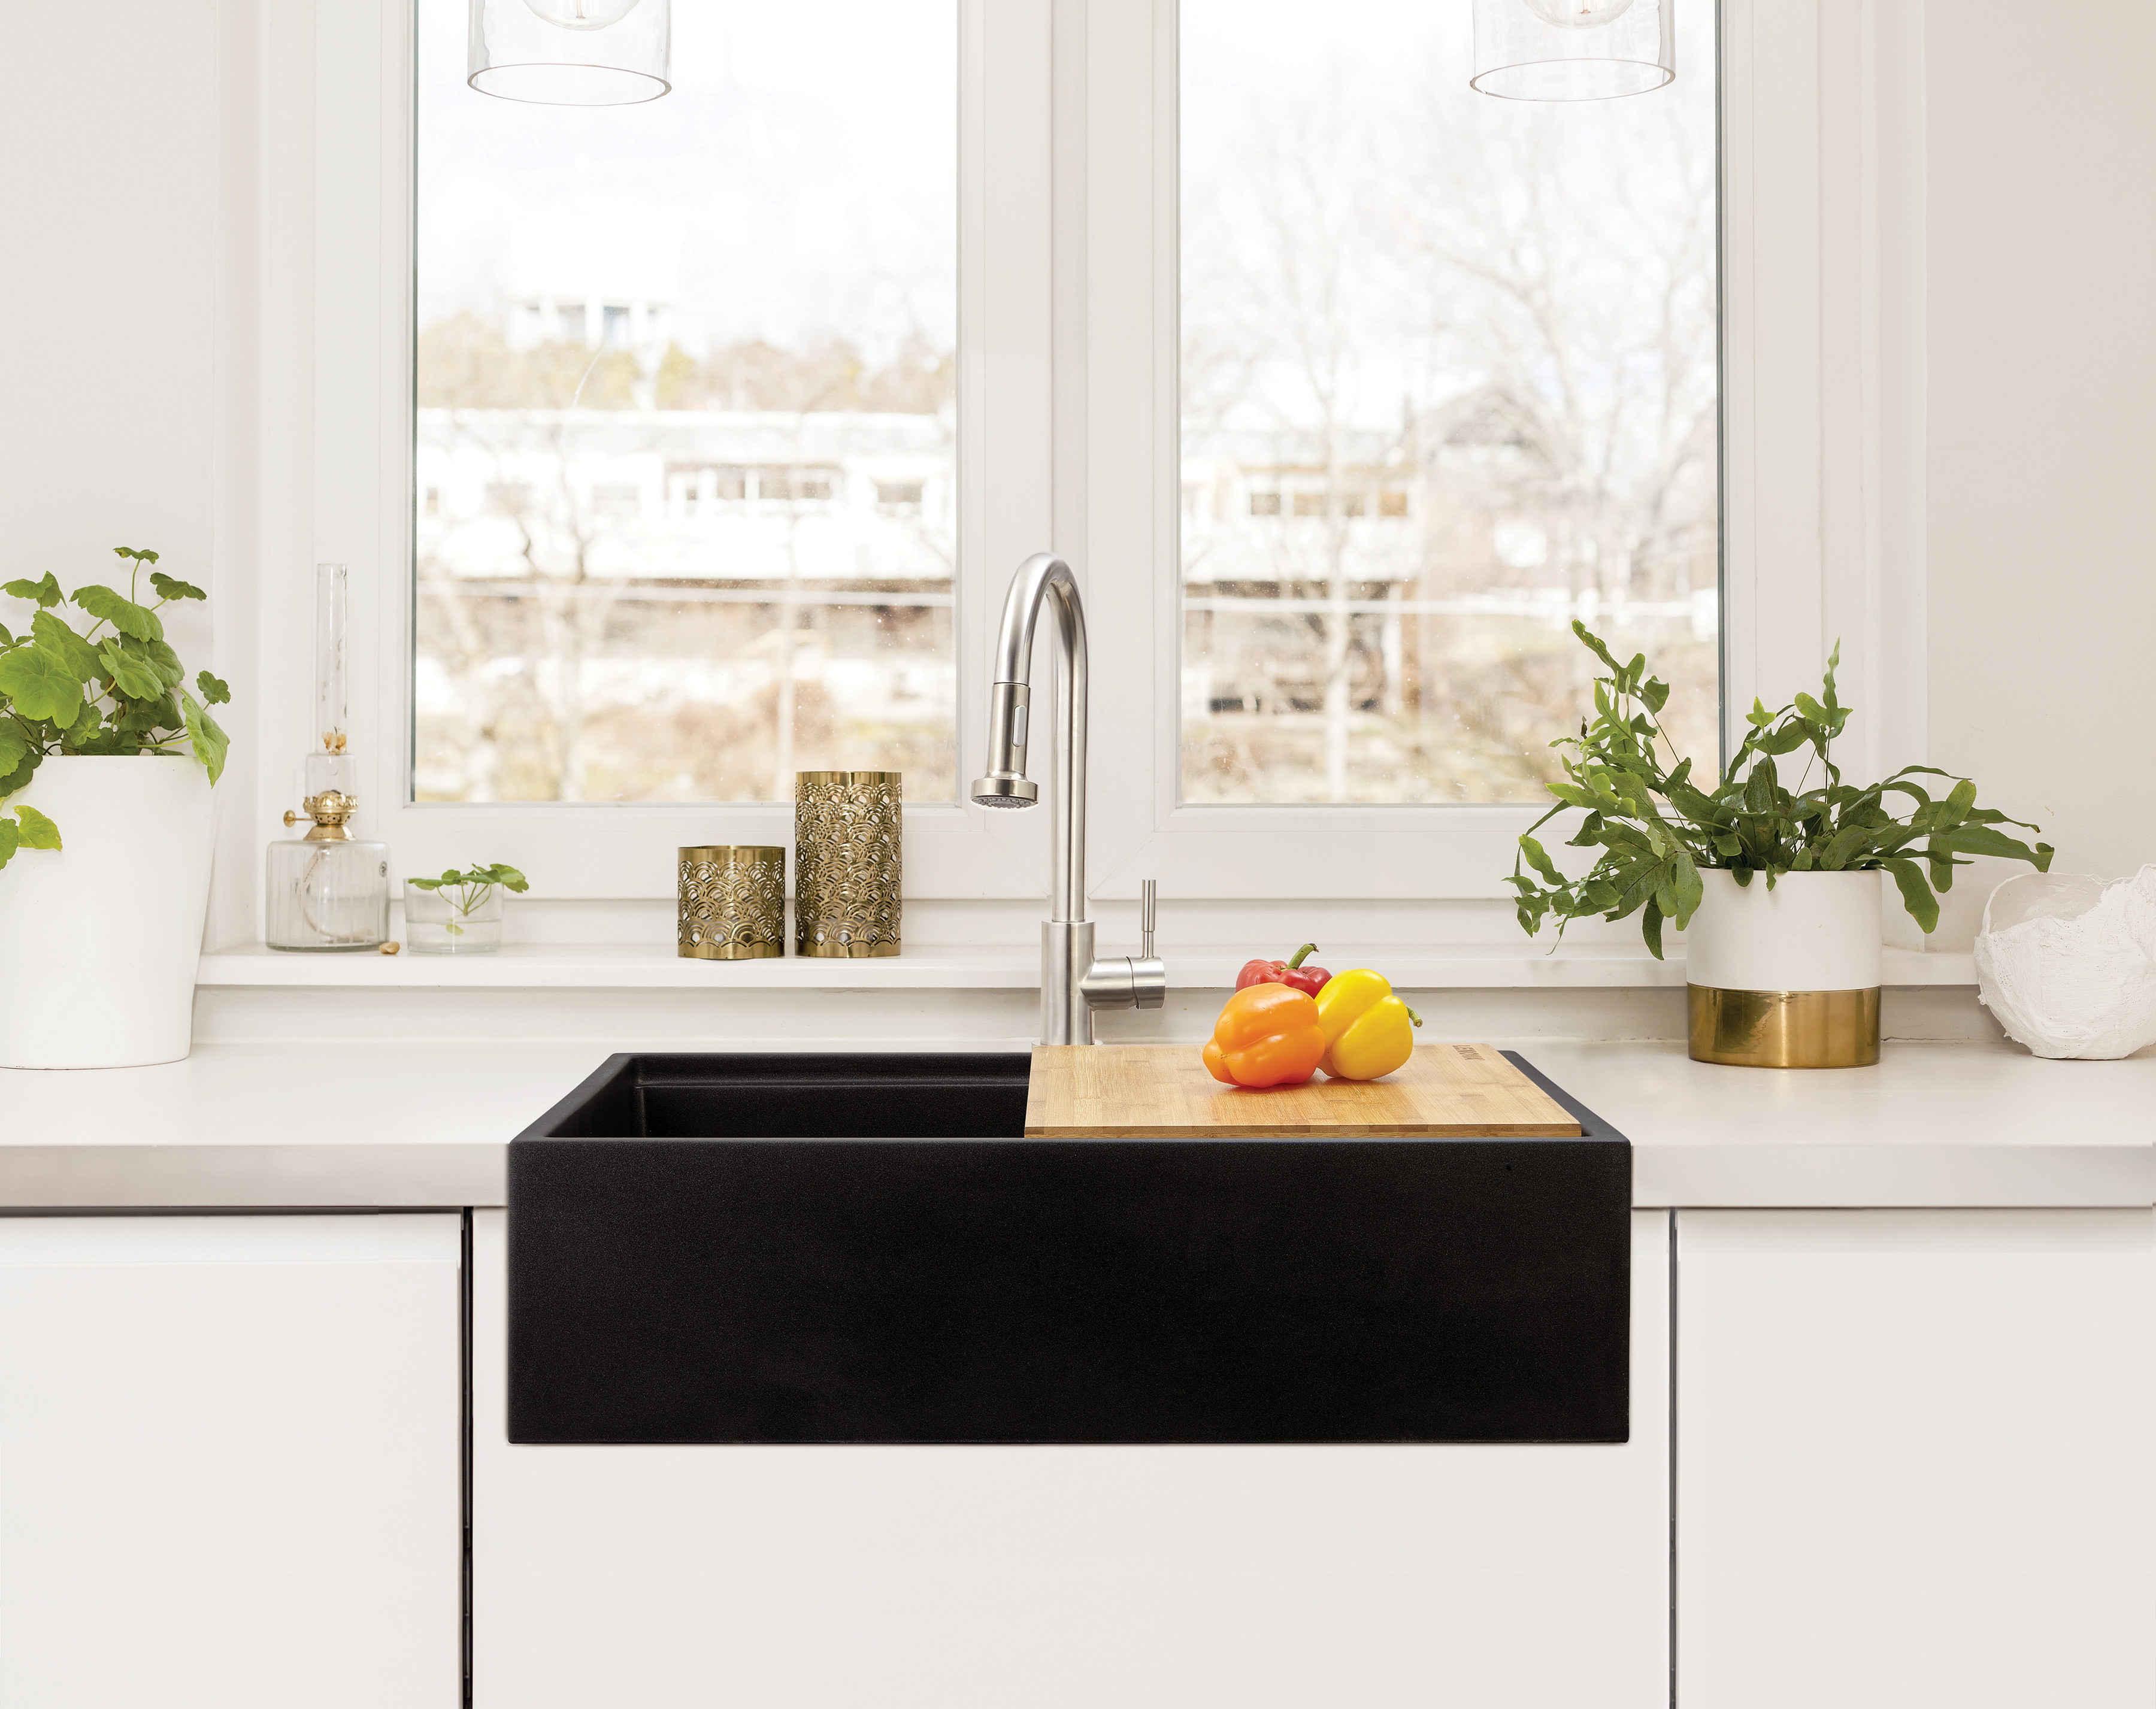 9 Farmhouse Apron Front Sinks Residential Products Online